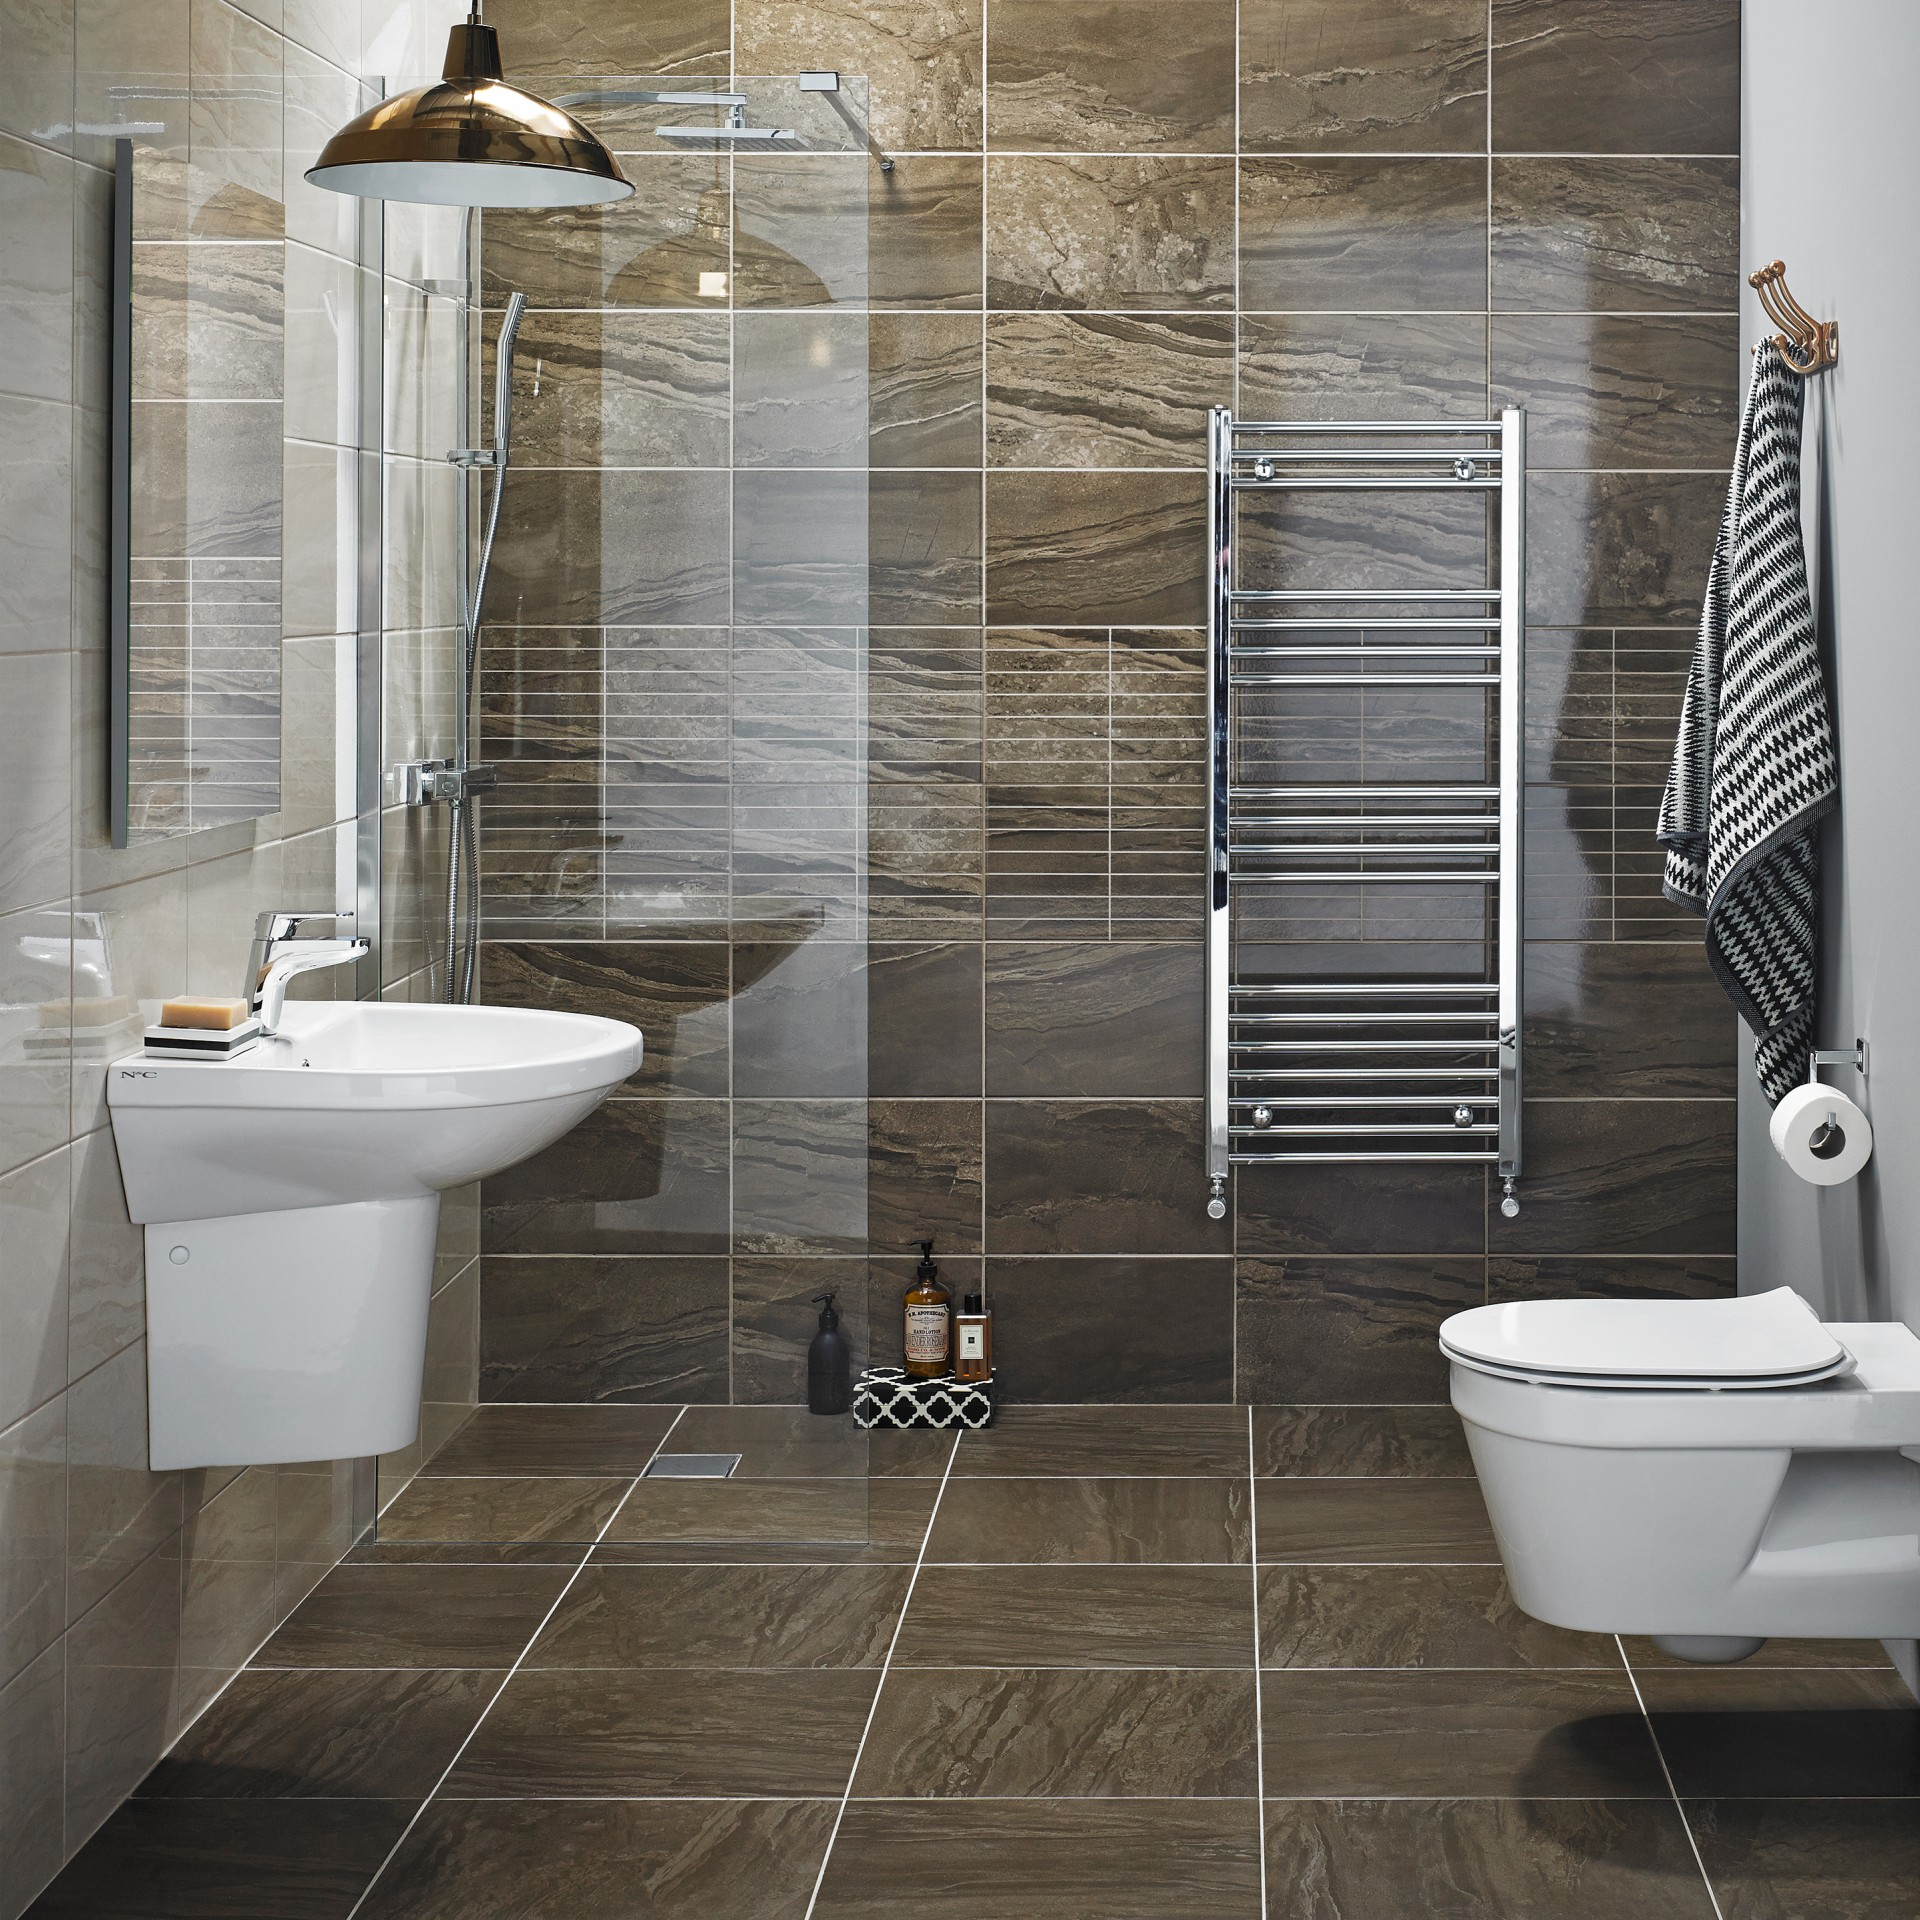 N c tiles and bathrooms for Tiling ideas for bathrooms